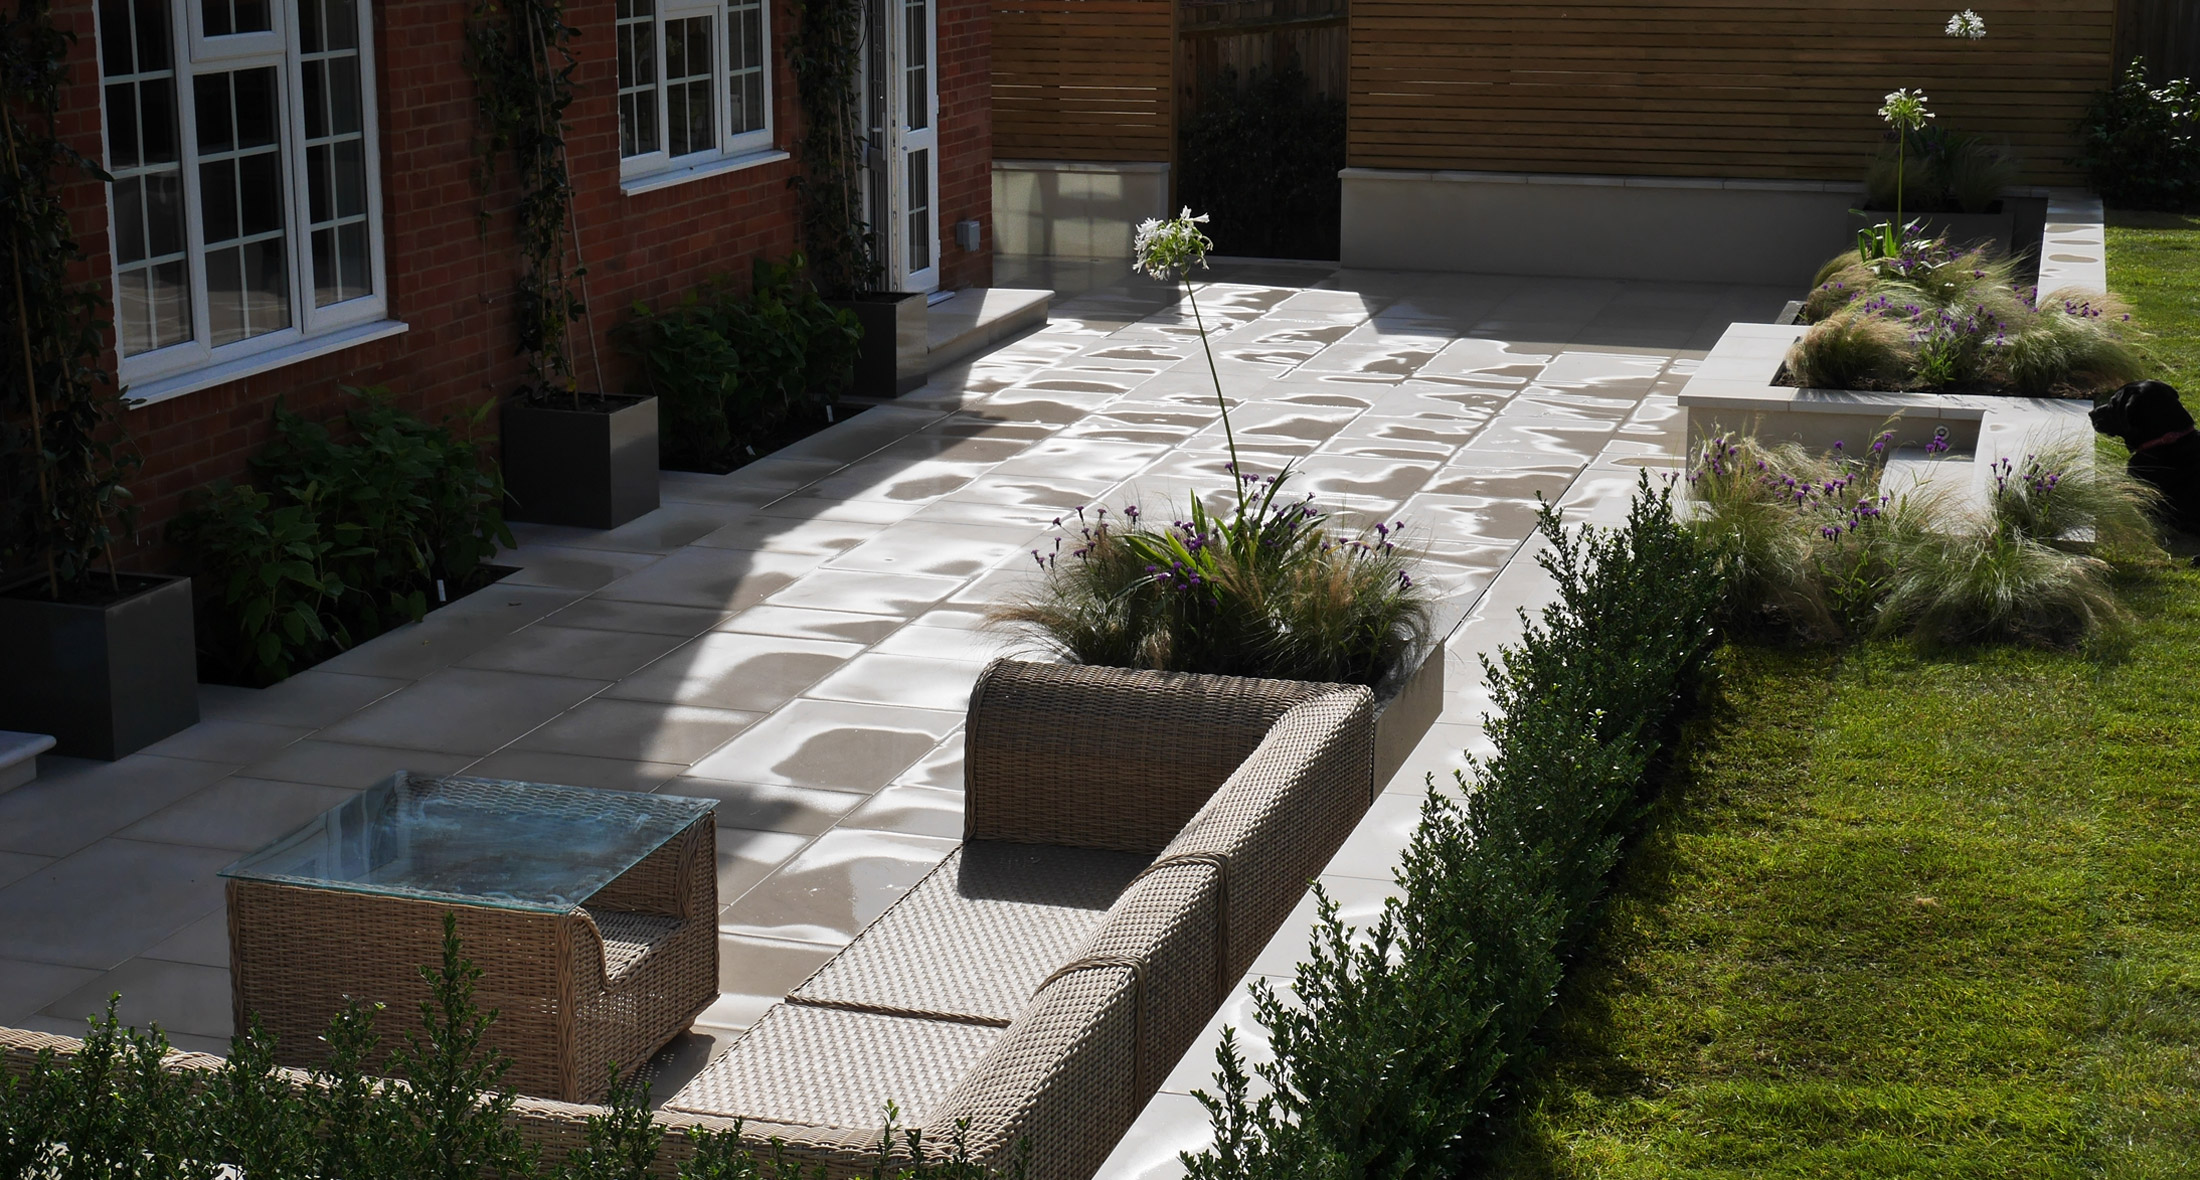 Slate grey garden design landscaping tunbridge wells kent for Garden design and landscaping